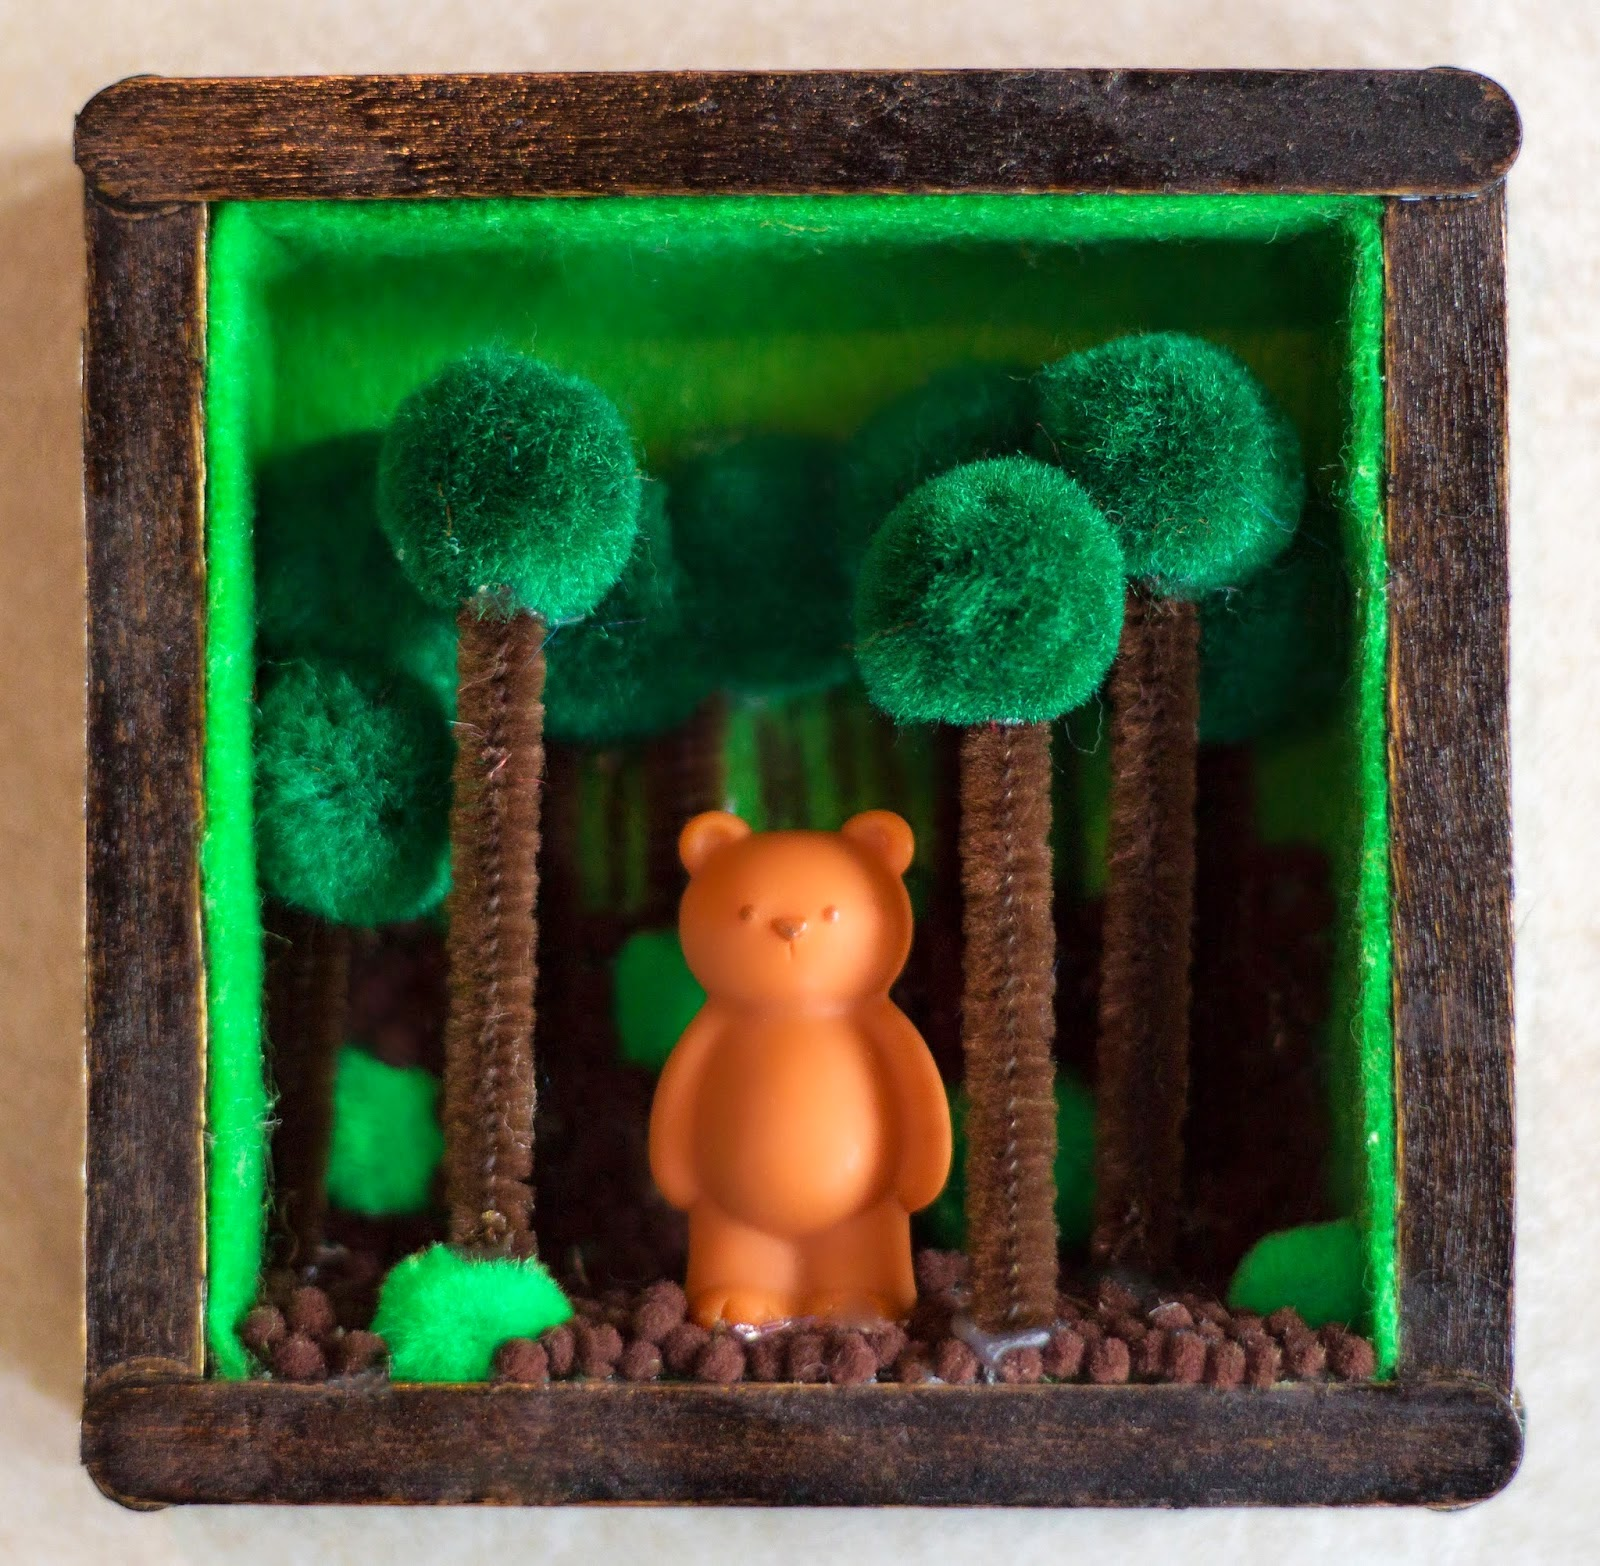 http://www.craftosaurus.net/2014/07/kitschy-shadow-box.html